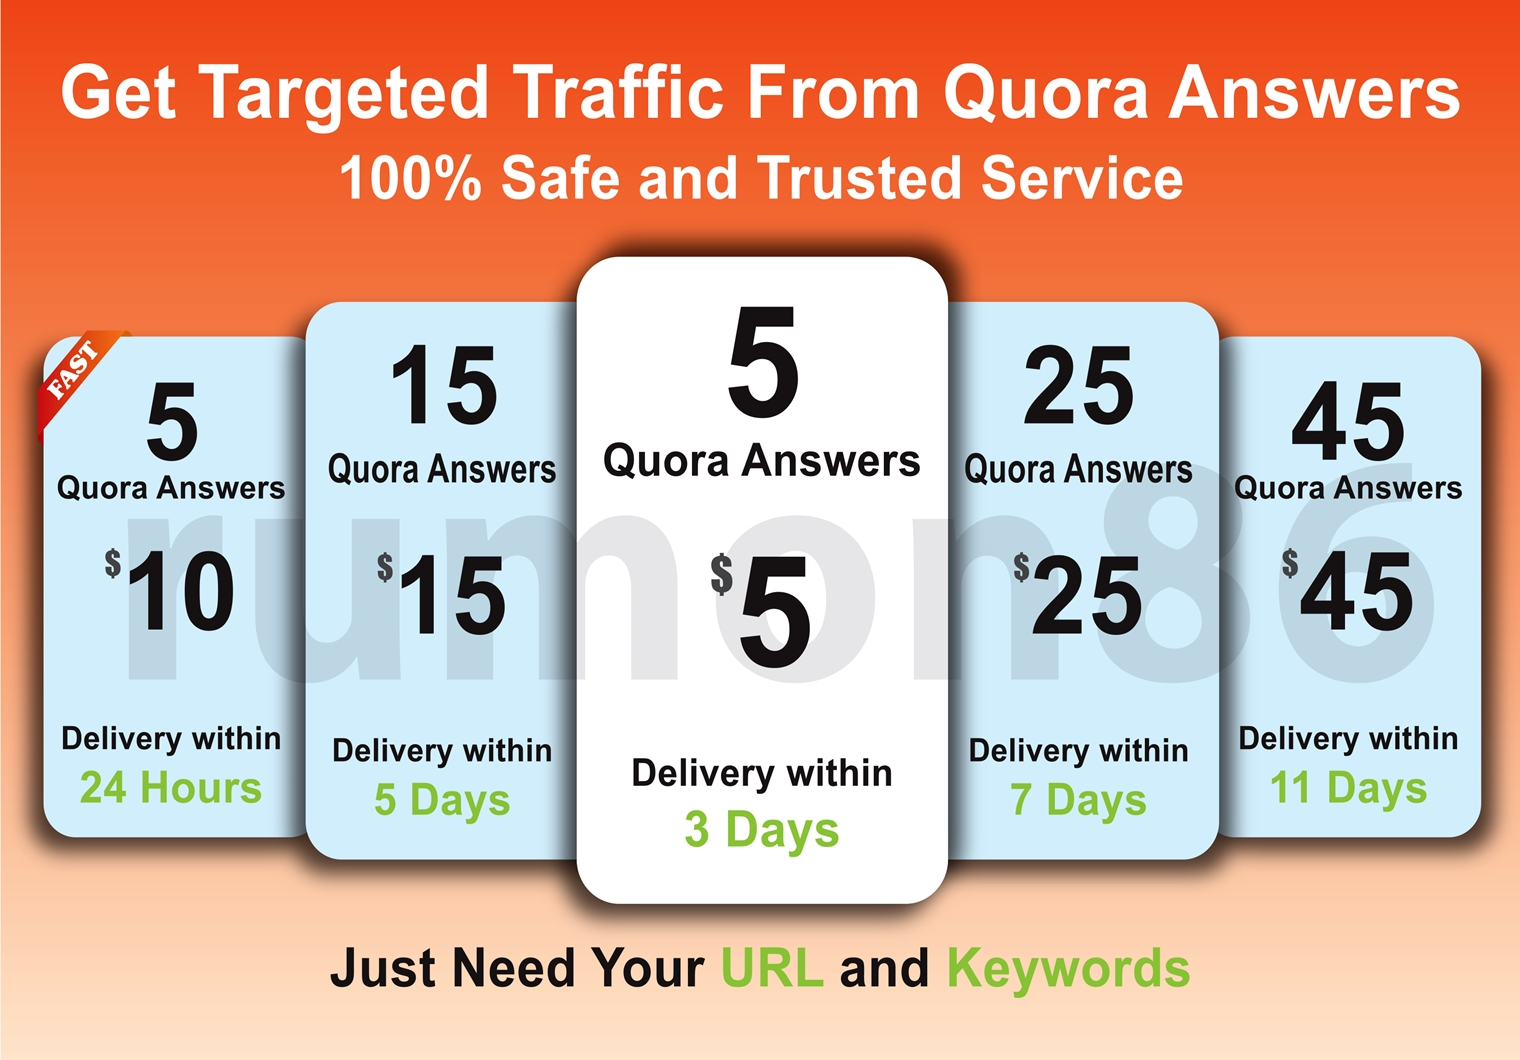 I will Boost your website Traffic and SEO Ranking by 5 Quora Answers